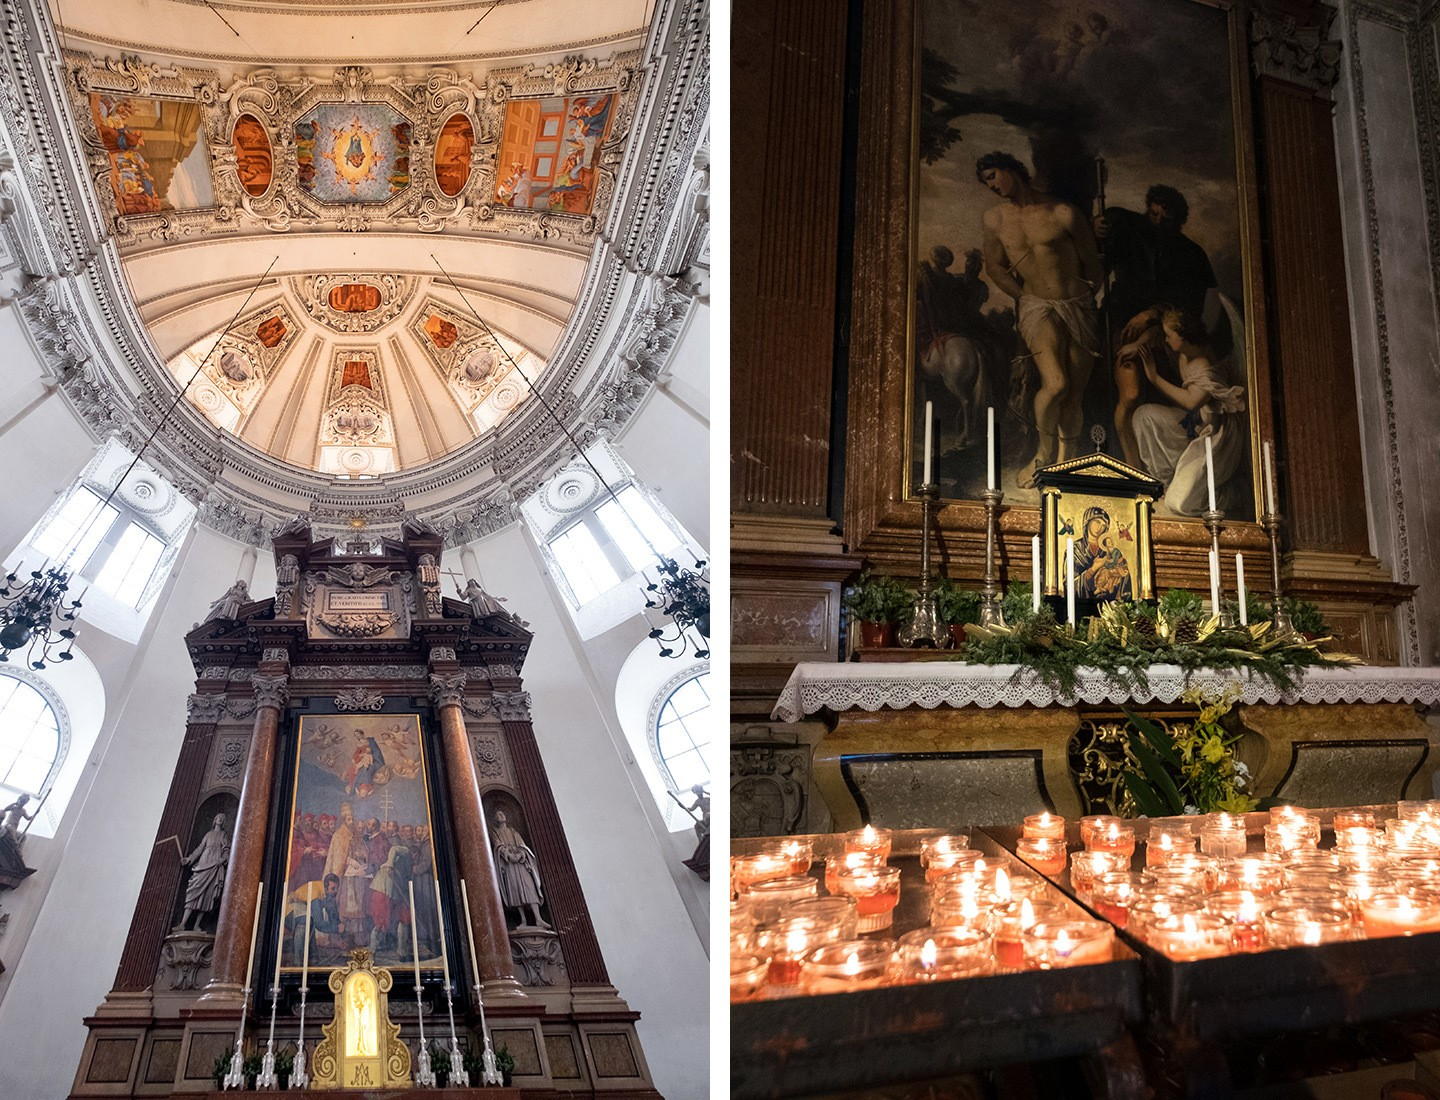 Salzburg cathedral – one of the top things to do in Salzburg